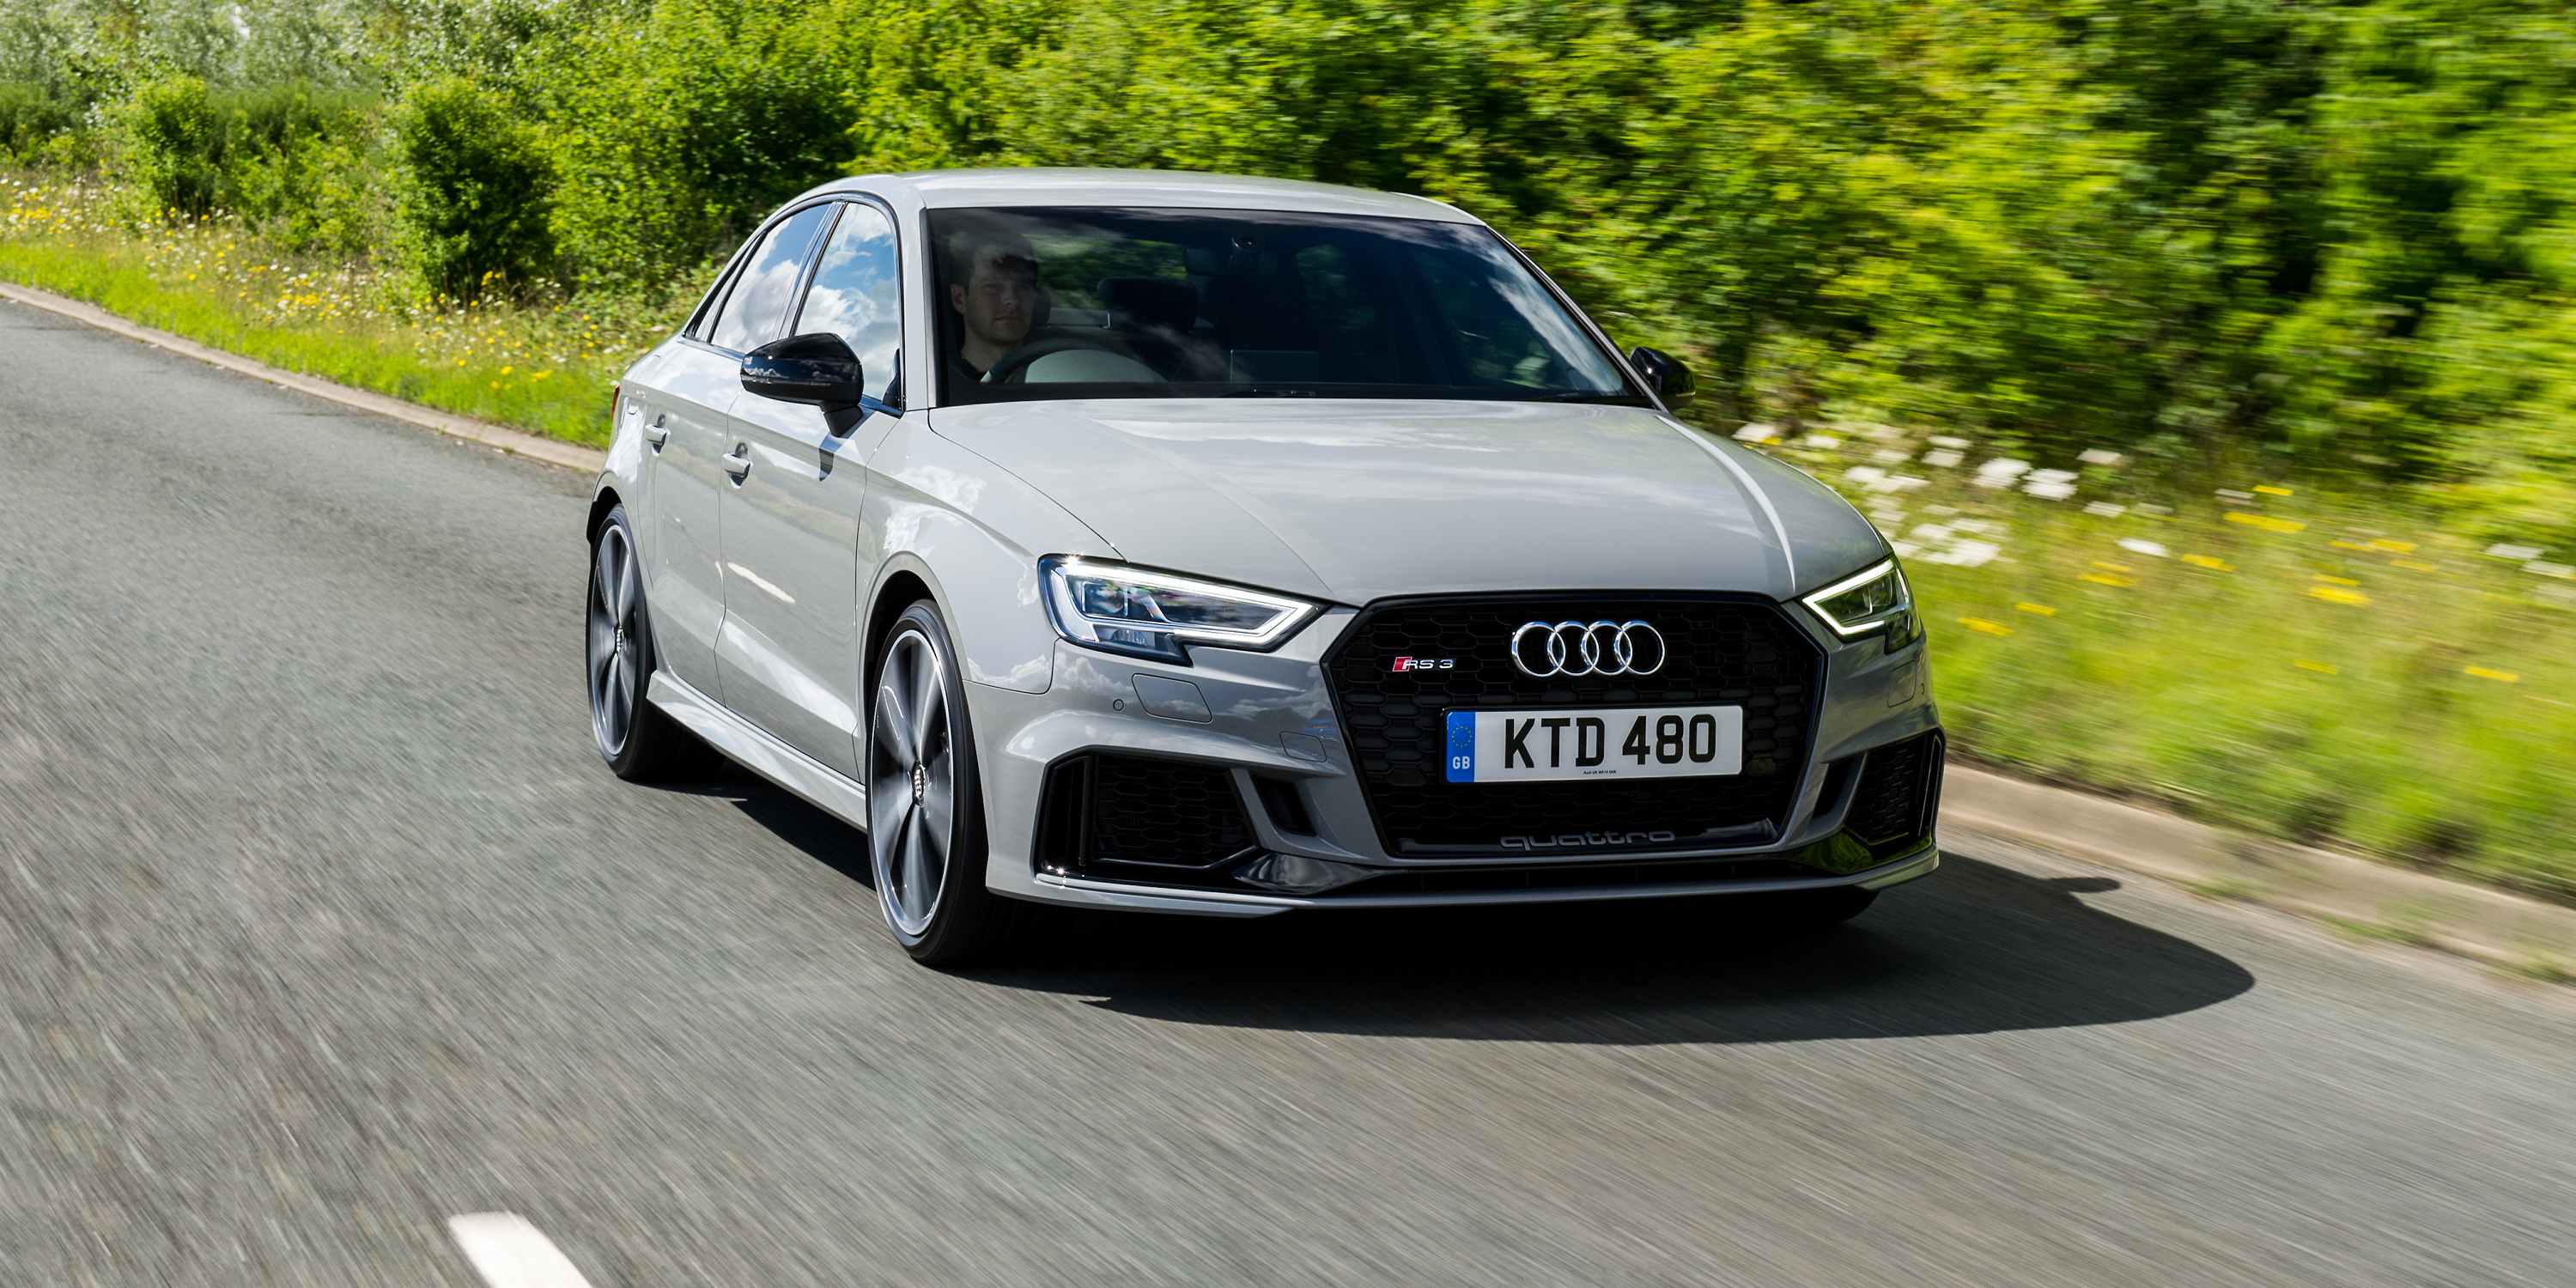 Audi Rs3 Saloon Review 2021 Carwow